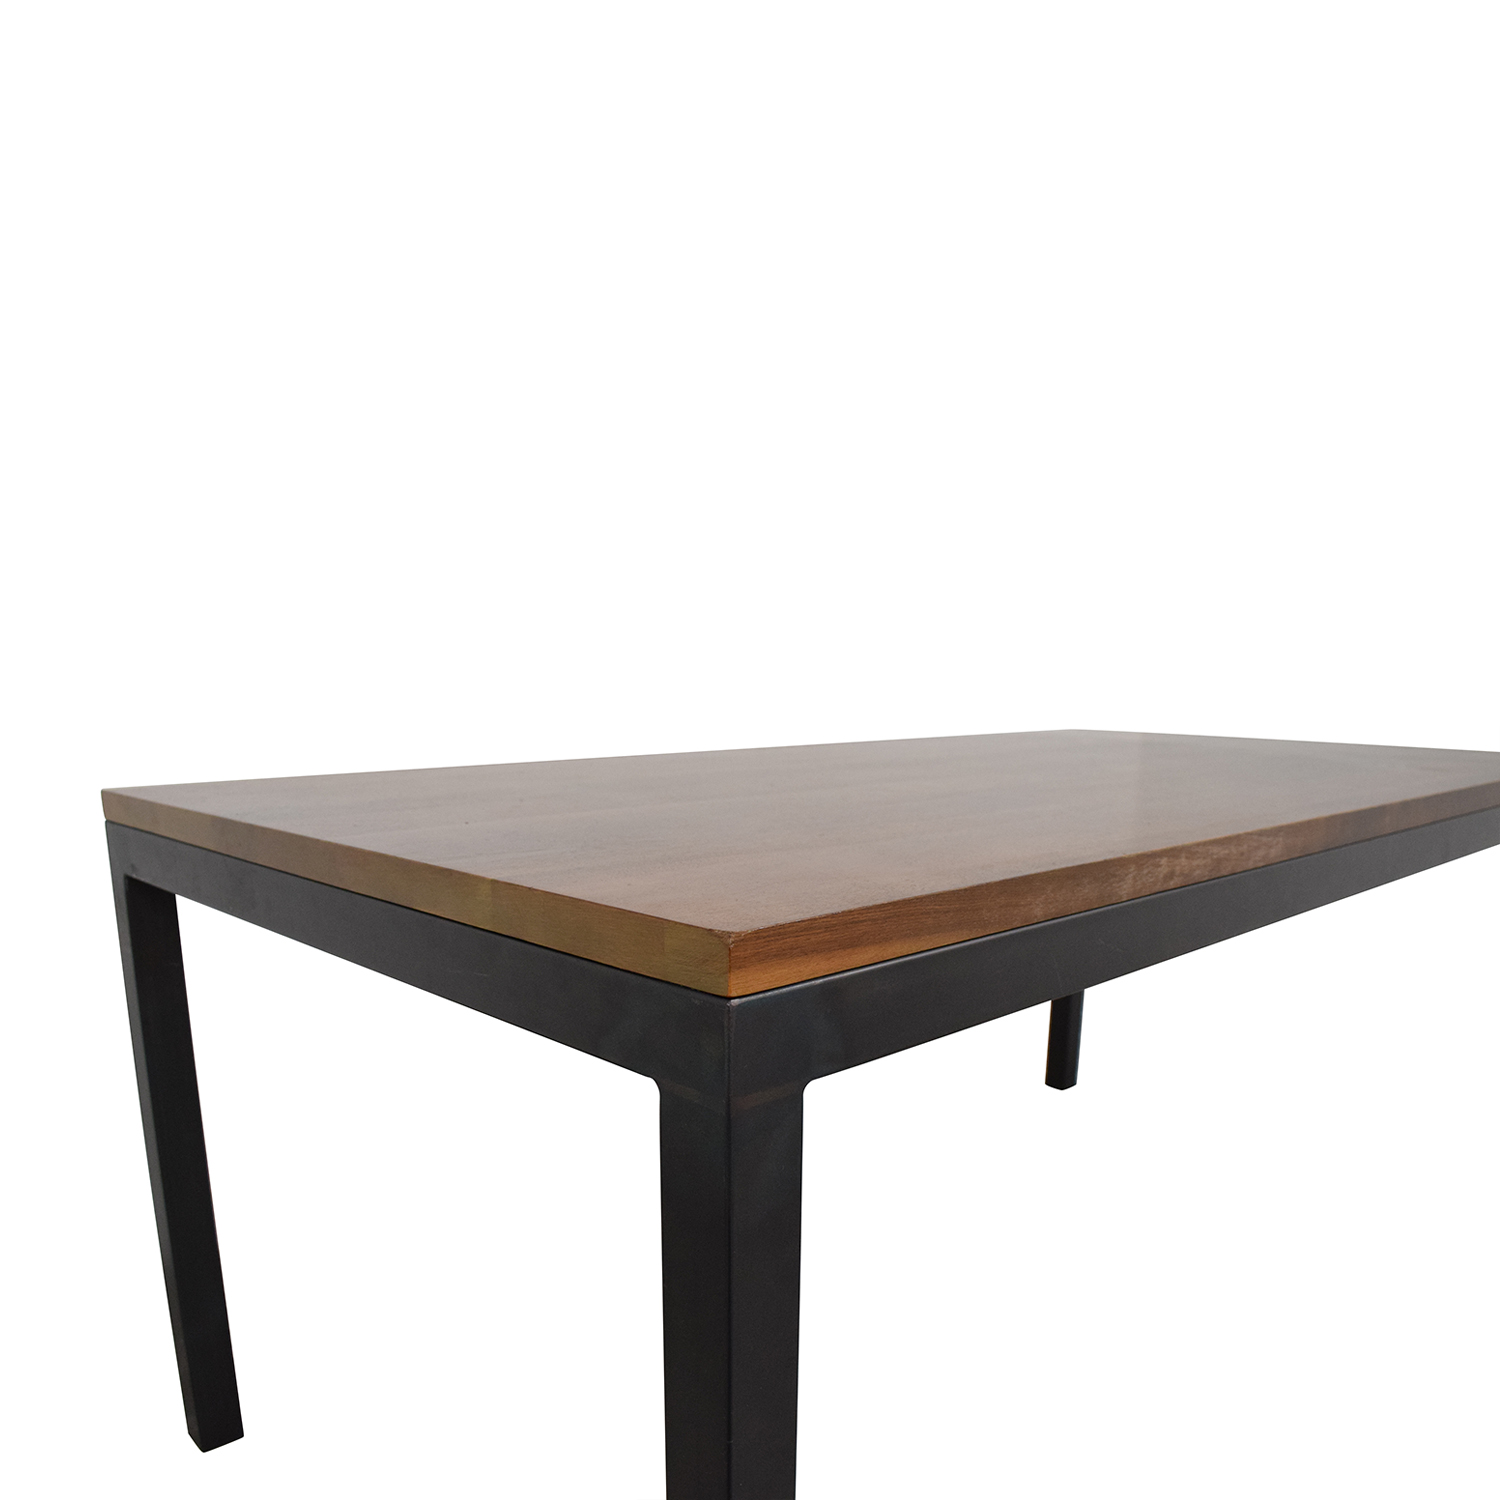 Room & Board Room & Board Walnut Parsons Table with Natural Steel Dinner Tables